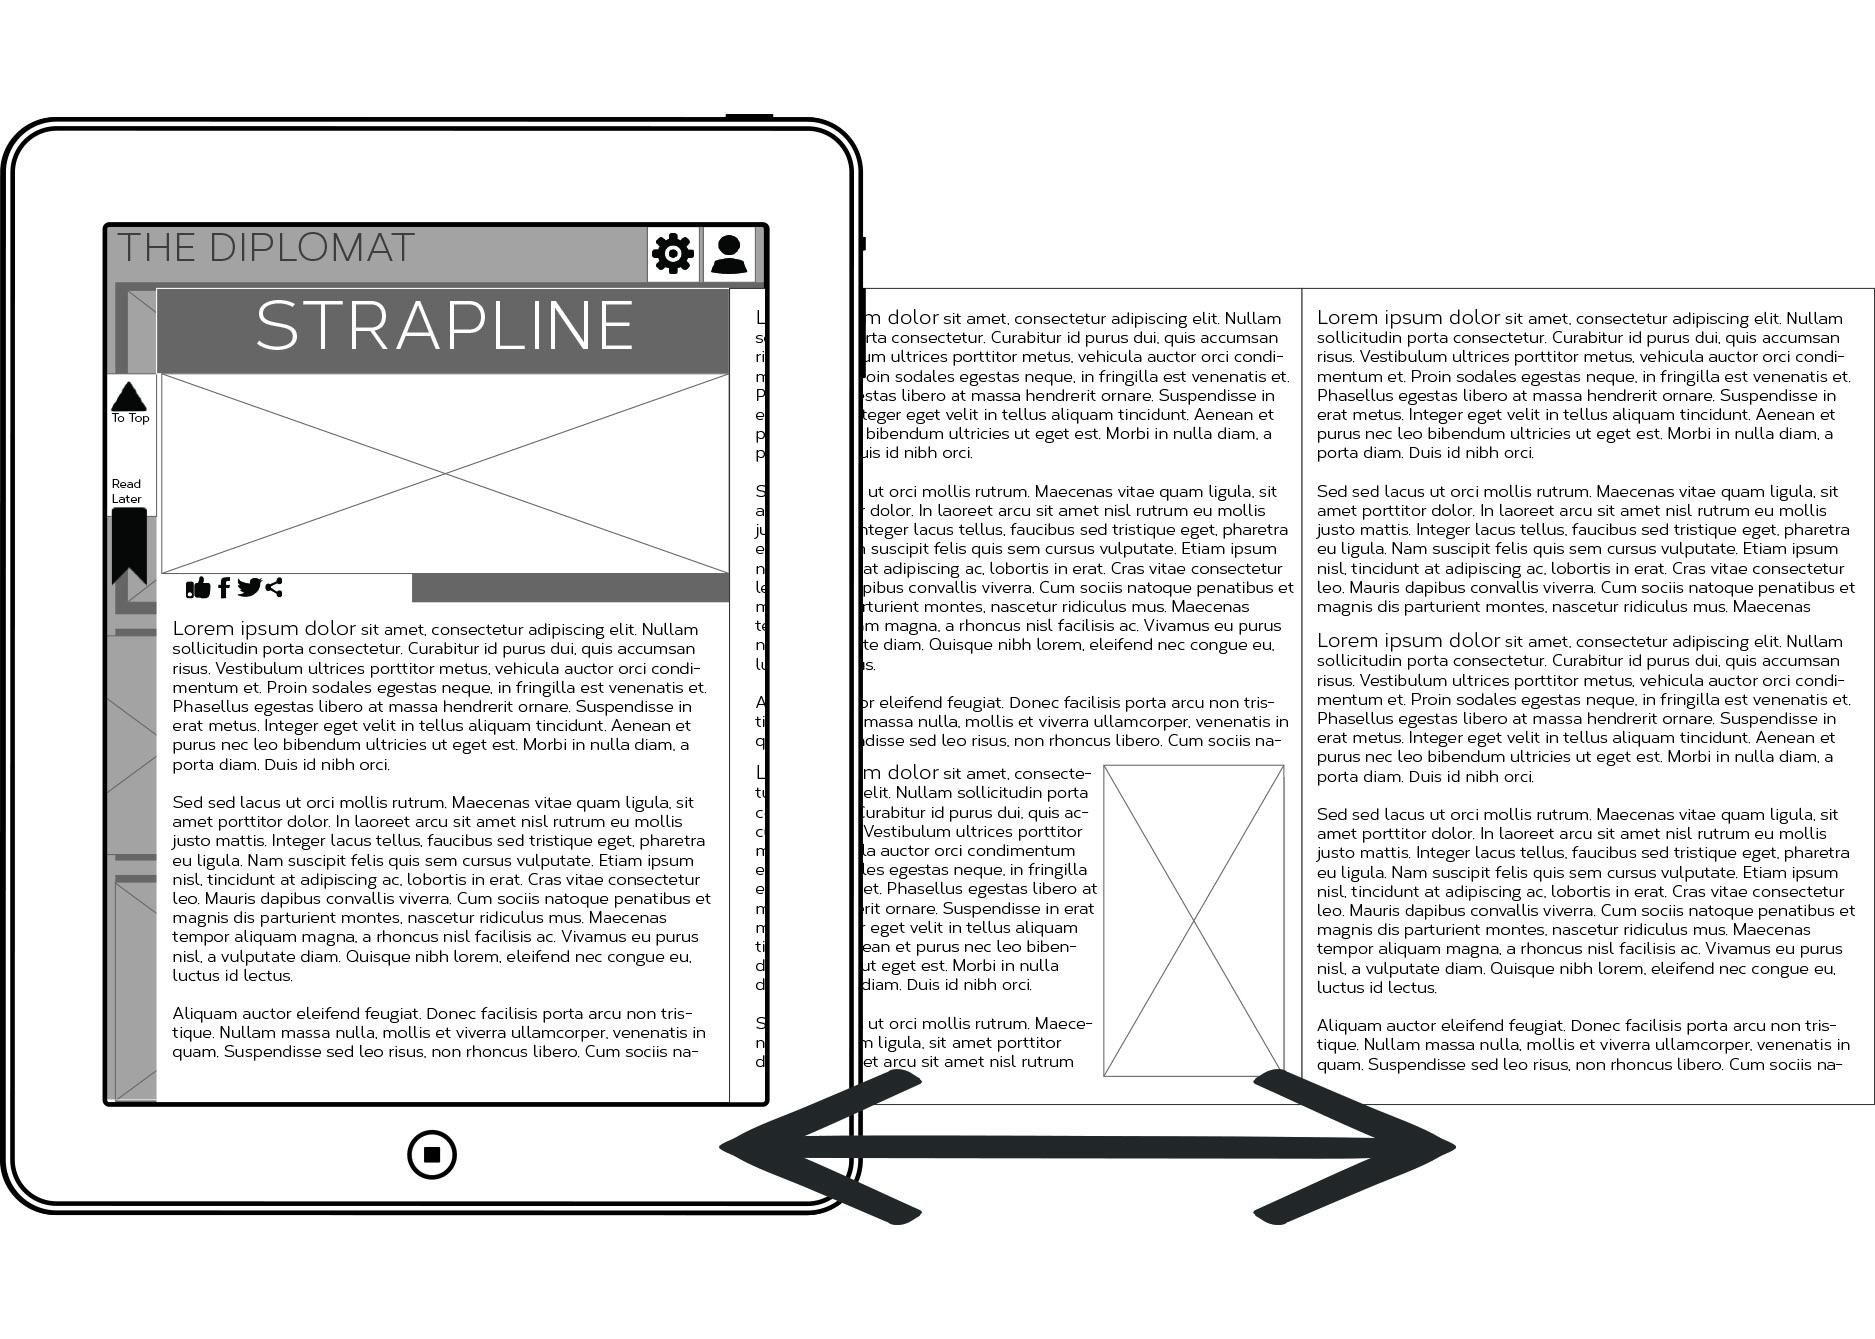 RSS reader for thediplomat - image 4 - student project